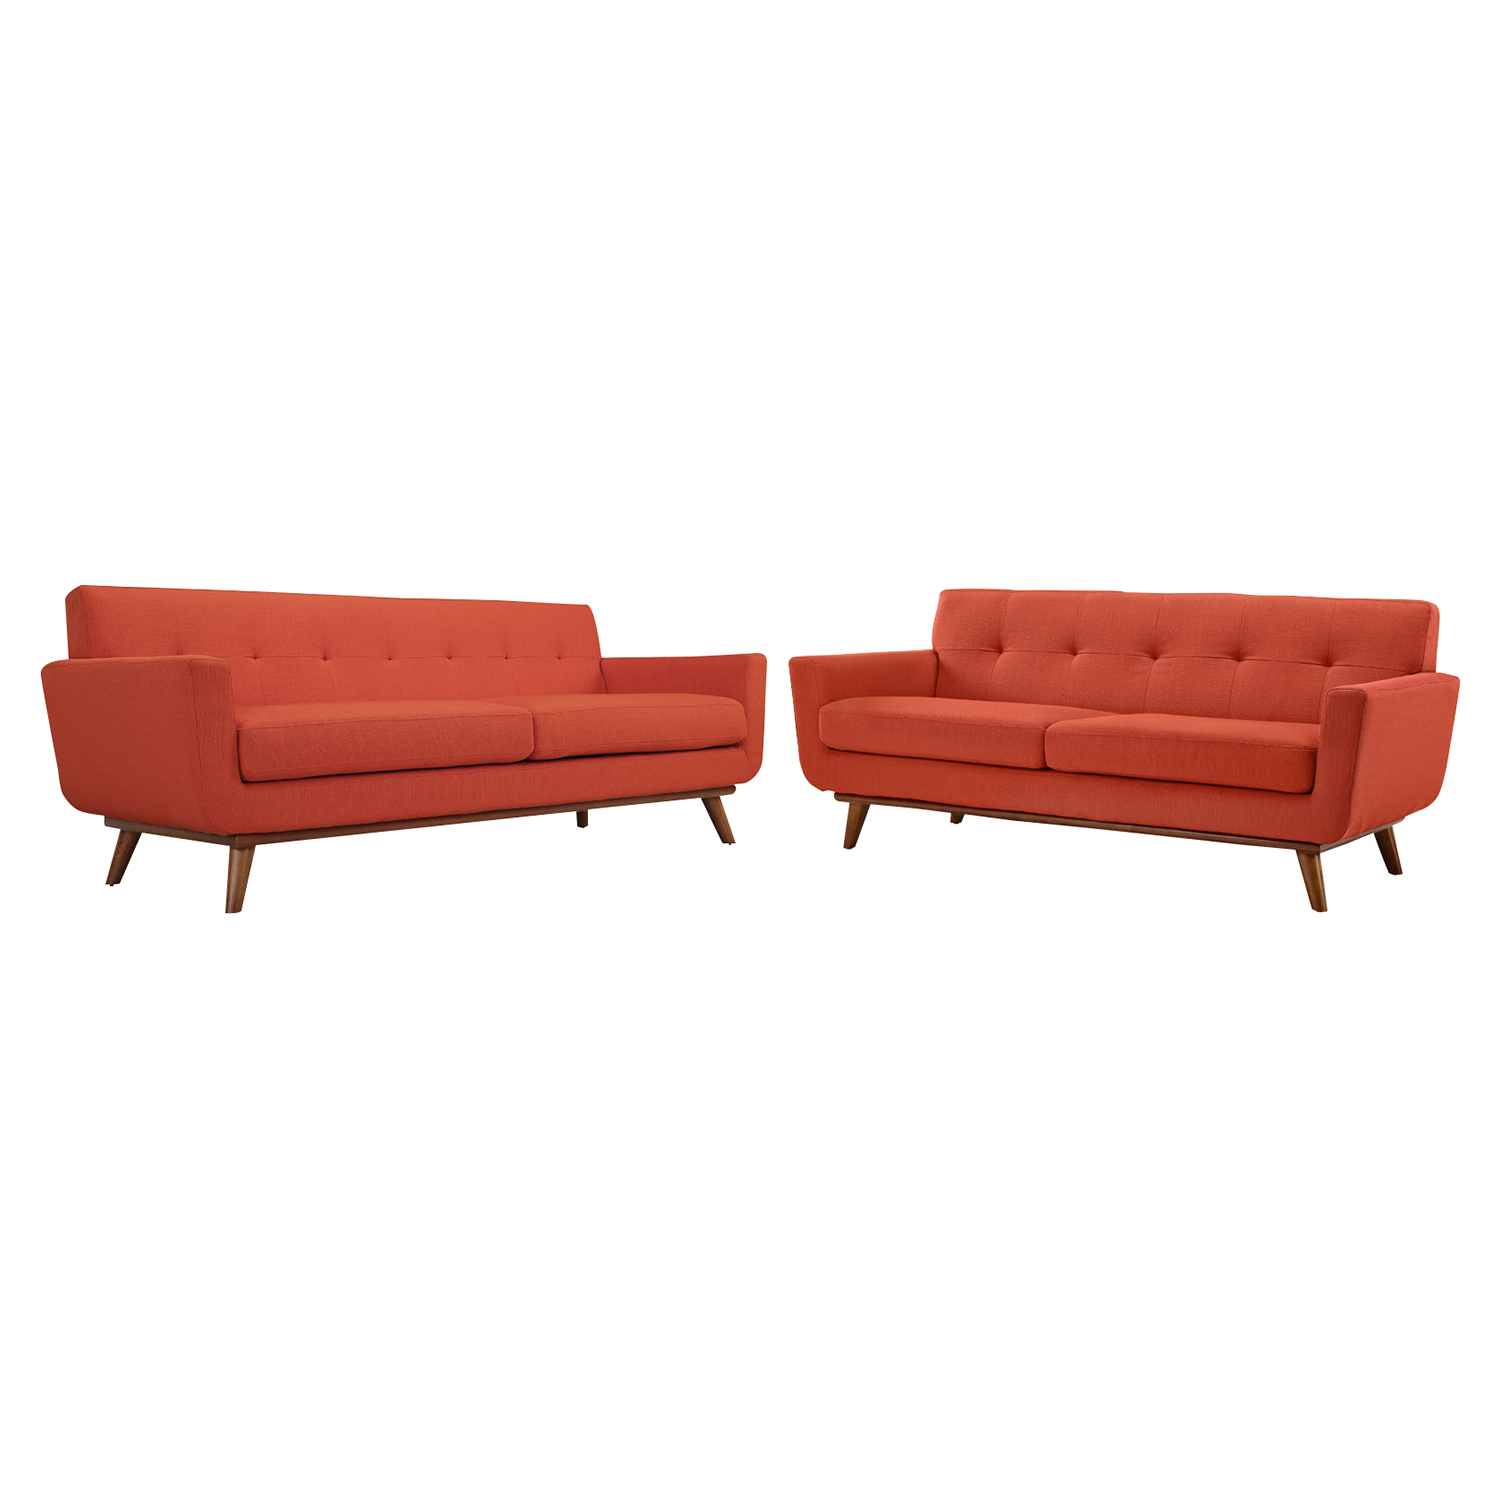 Engage 2 Pieces Loveseat and Sofa - Tufted - EEI-1348